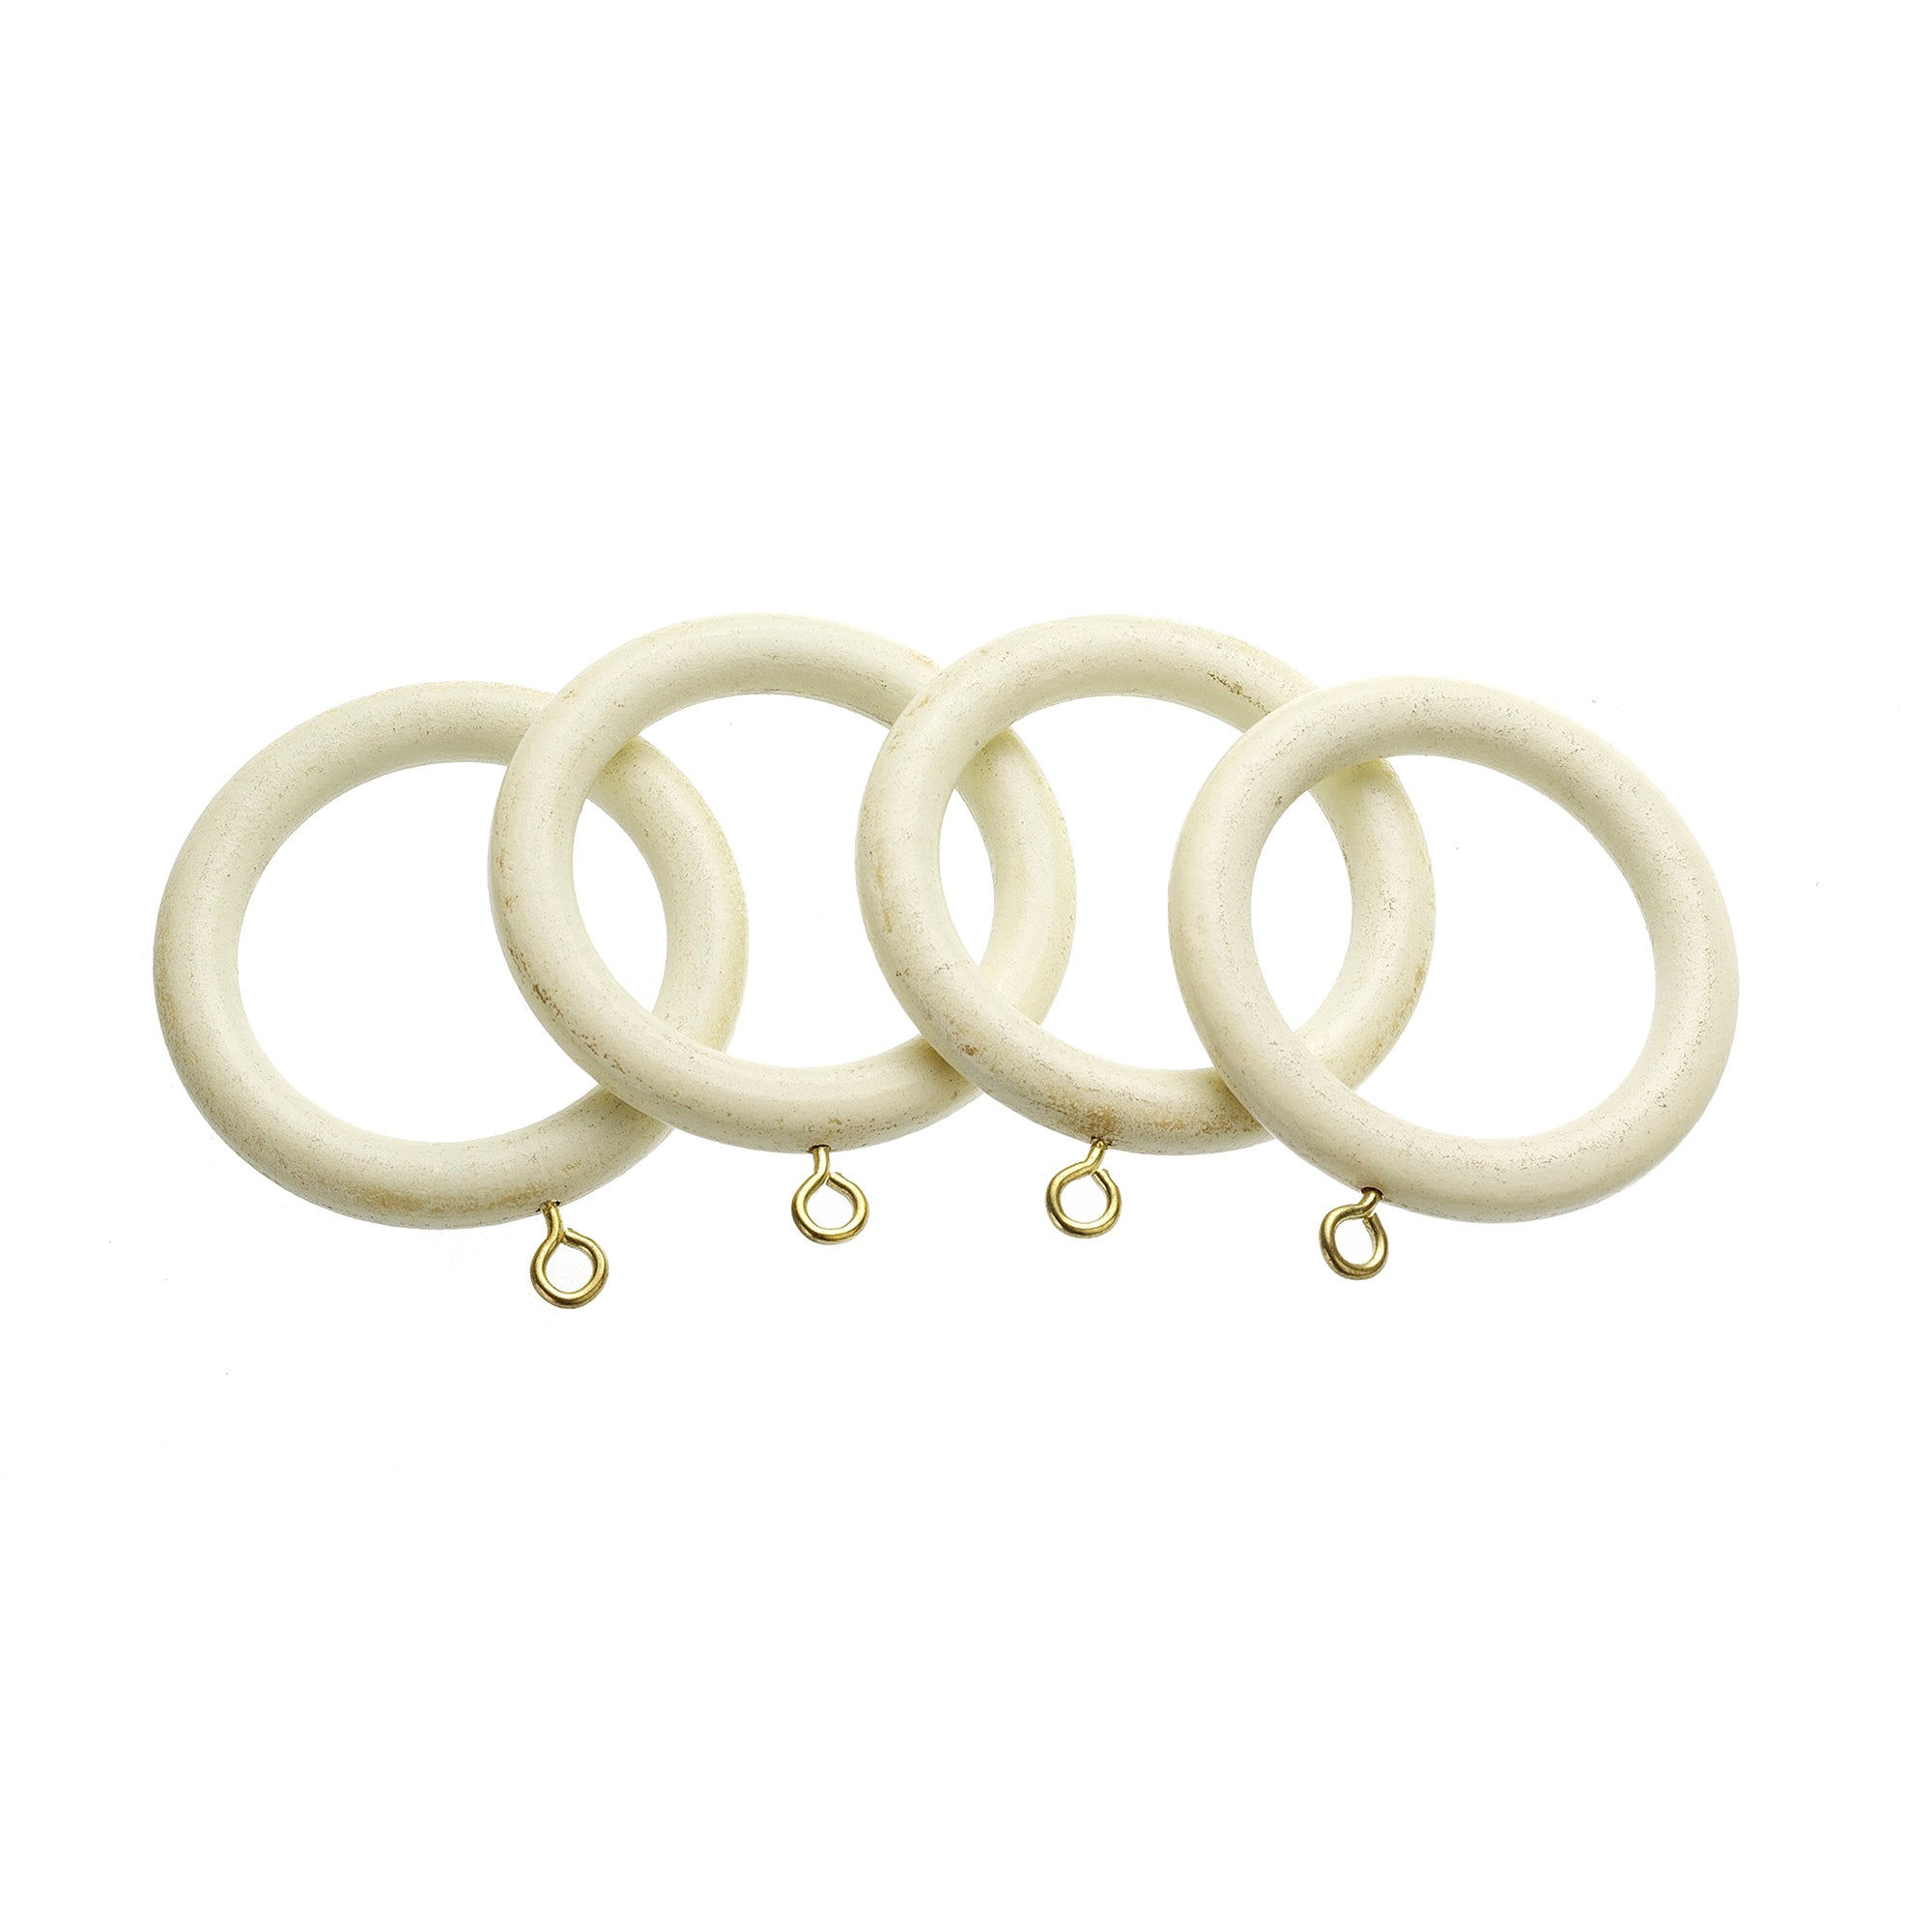 Swish Cambridge Collection Pack of 4 Curtain Rings